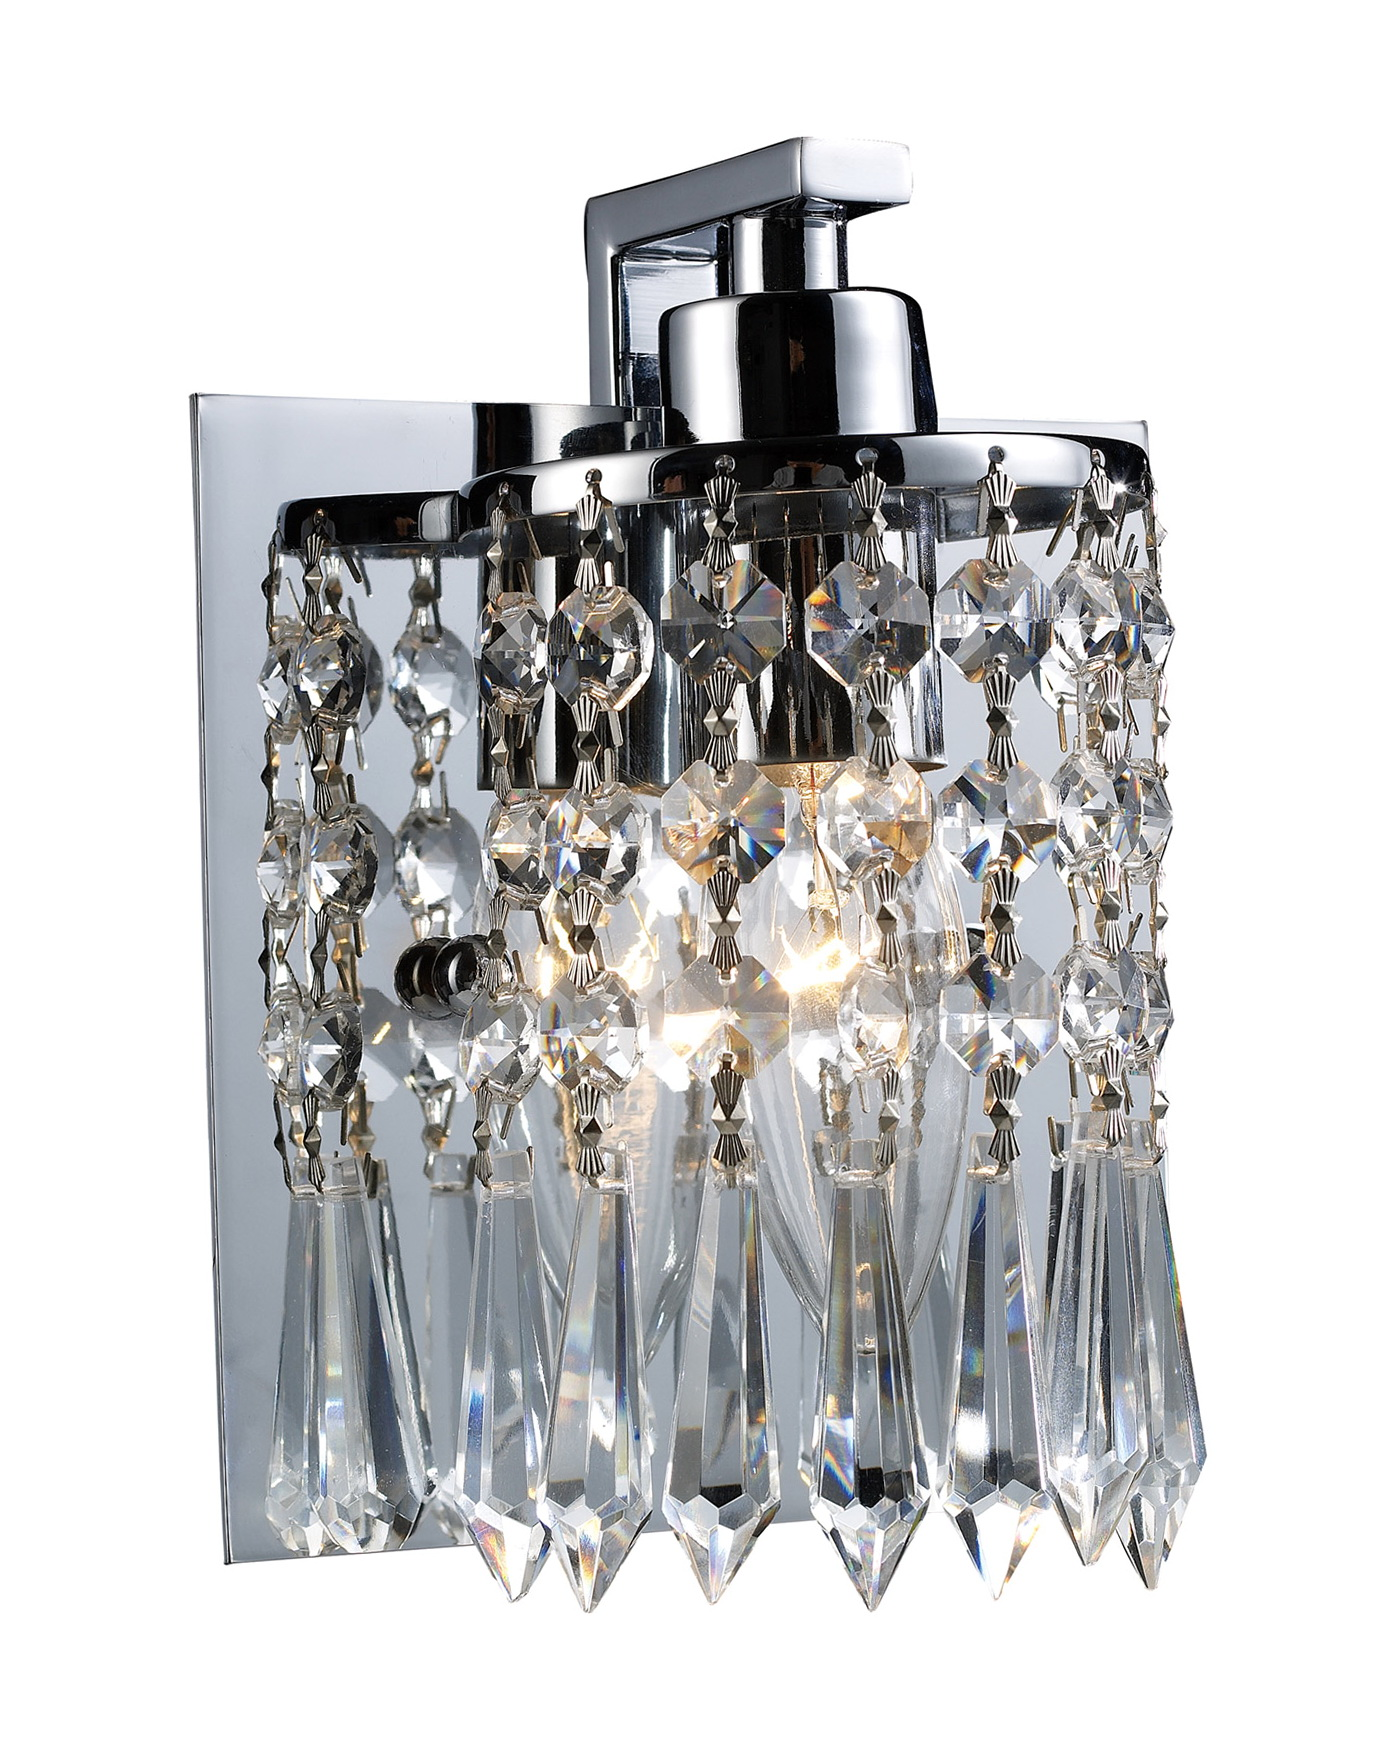 Crystal Wall Sconces With Shades Gleaming Gold Finish